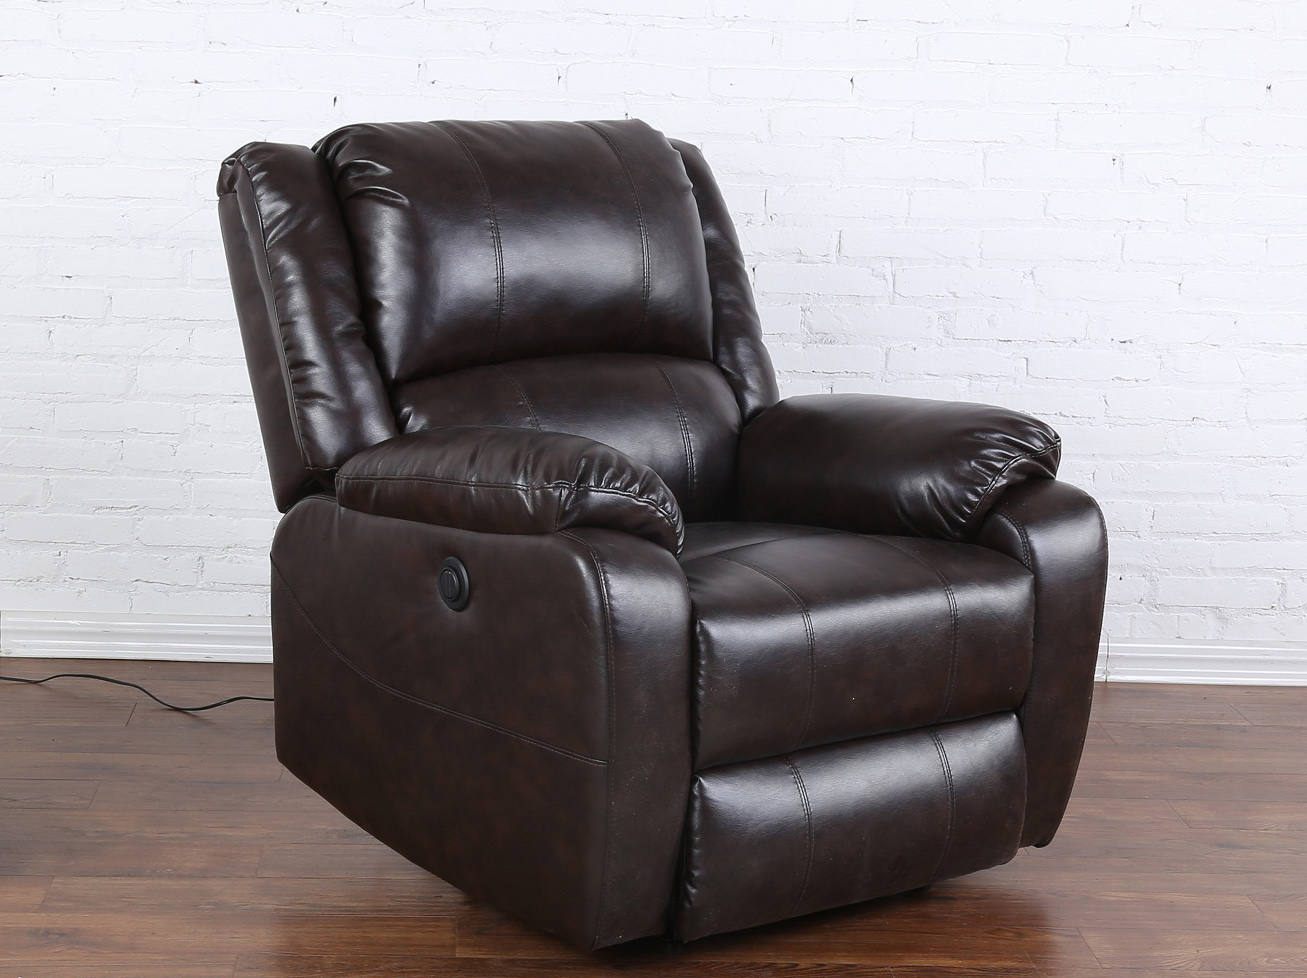 Plush Living Room Bonded Leather Recliner Chair Reclining